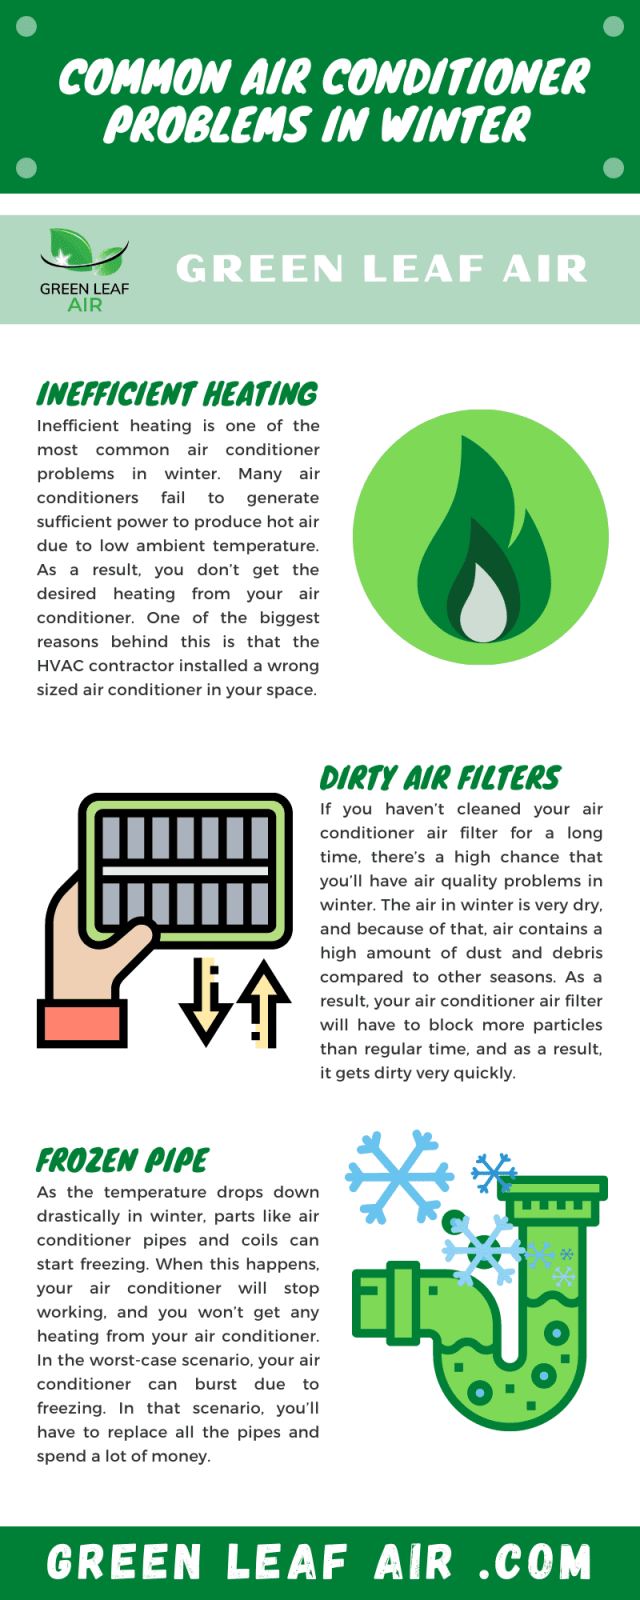 Common Air Conditioner Problems in Winter